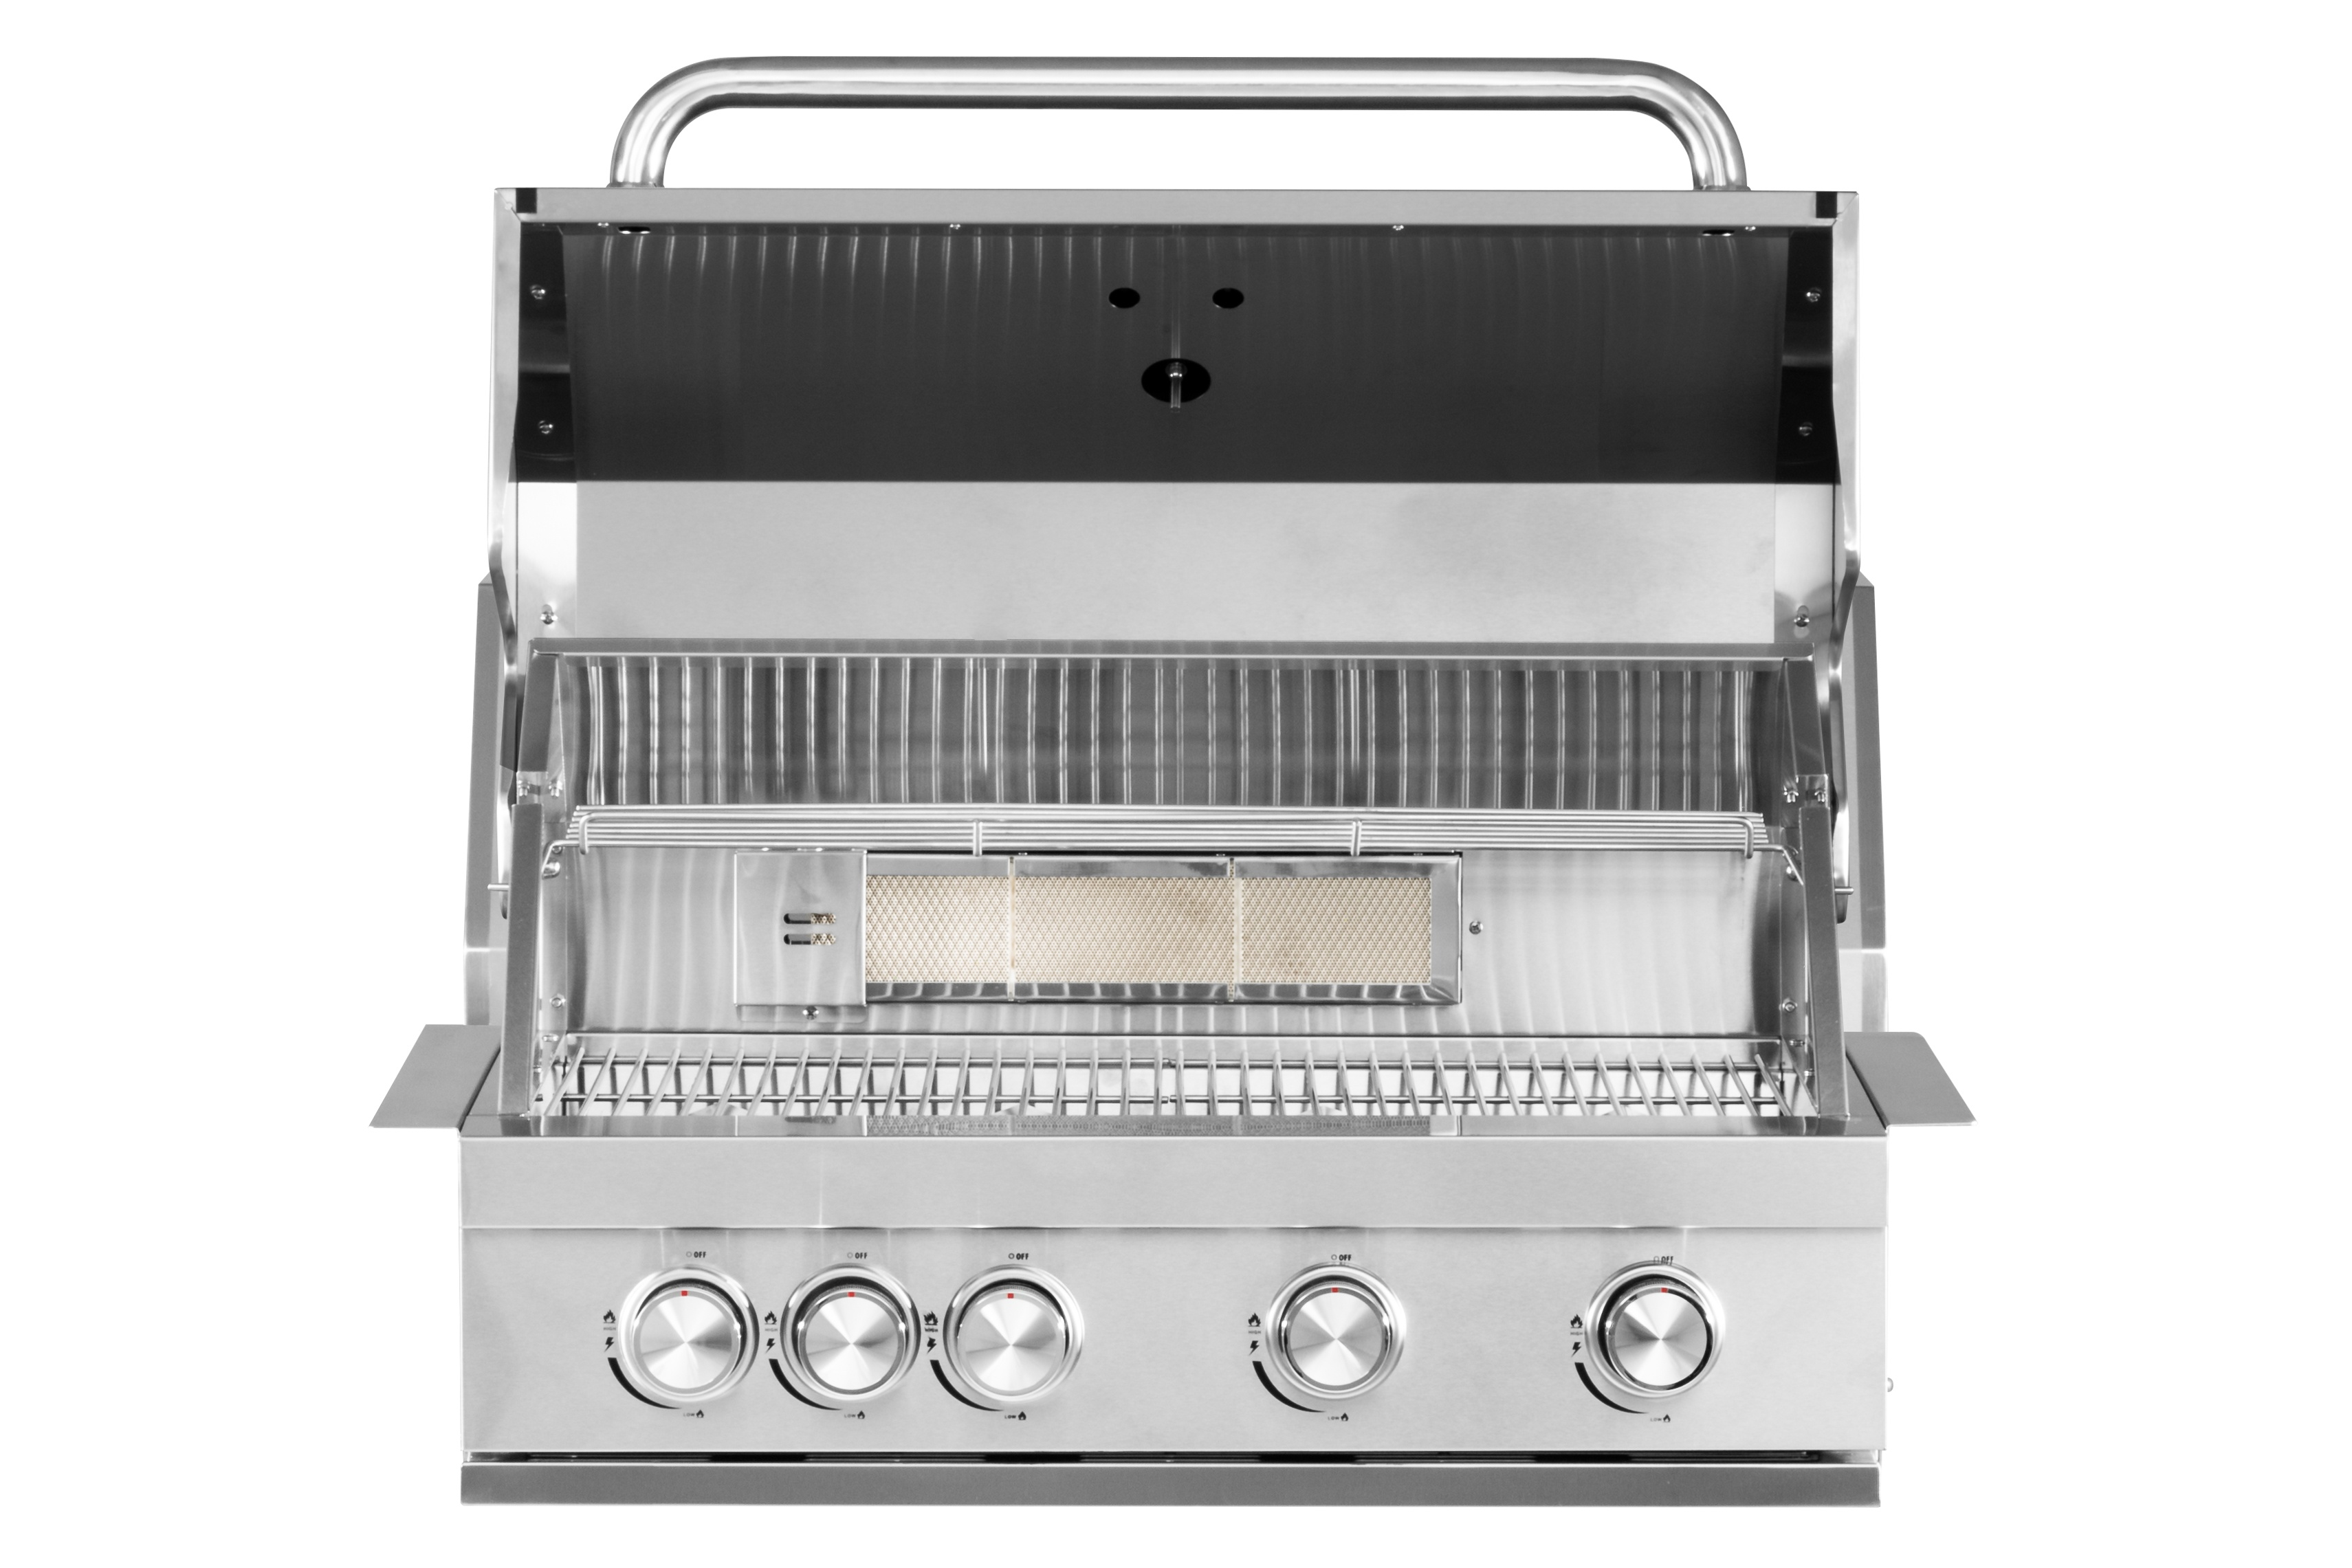 Inbouw Gas Bbq.Mustang Gas Grill Pearl 4 Pits Inbouw